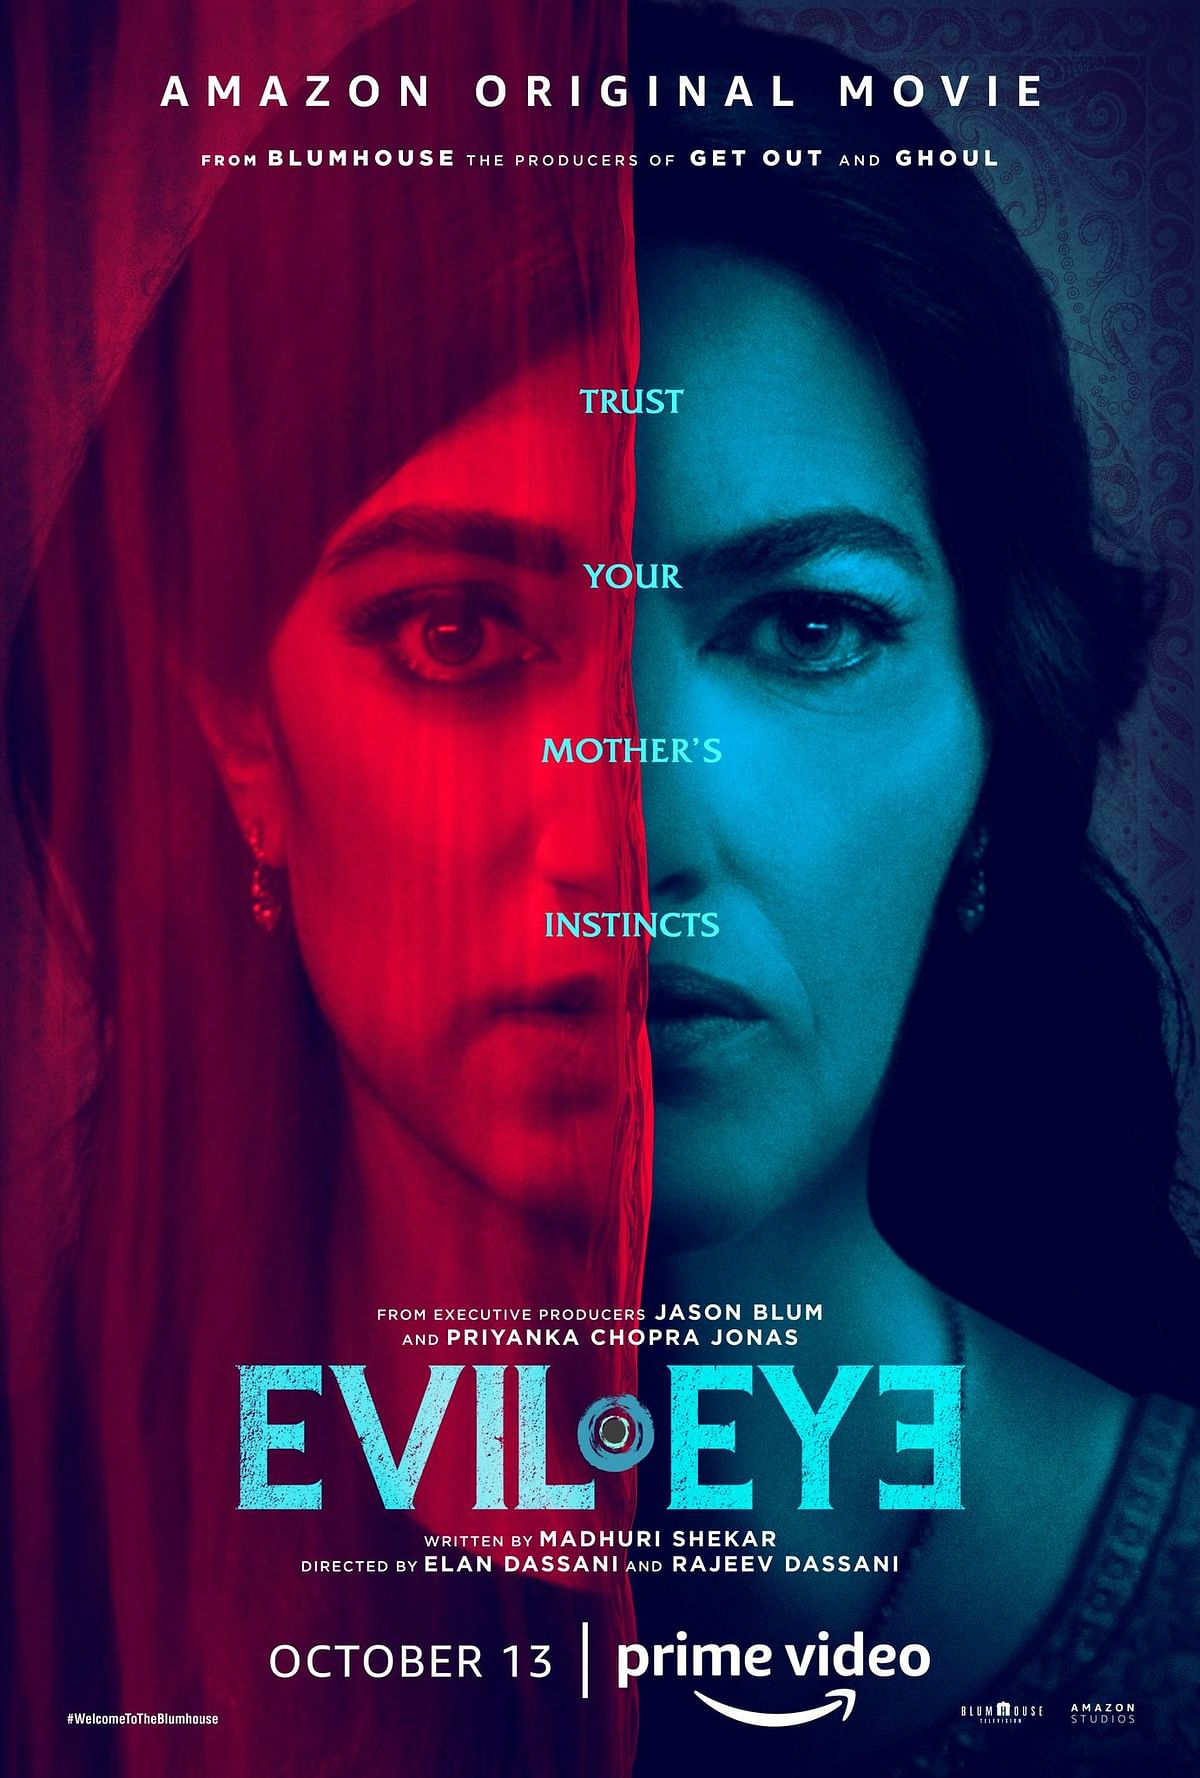 10 Honest Thoughts About Priyanka Chopra's 'Evil Eye'